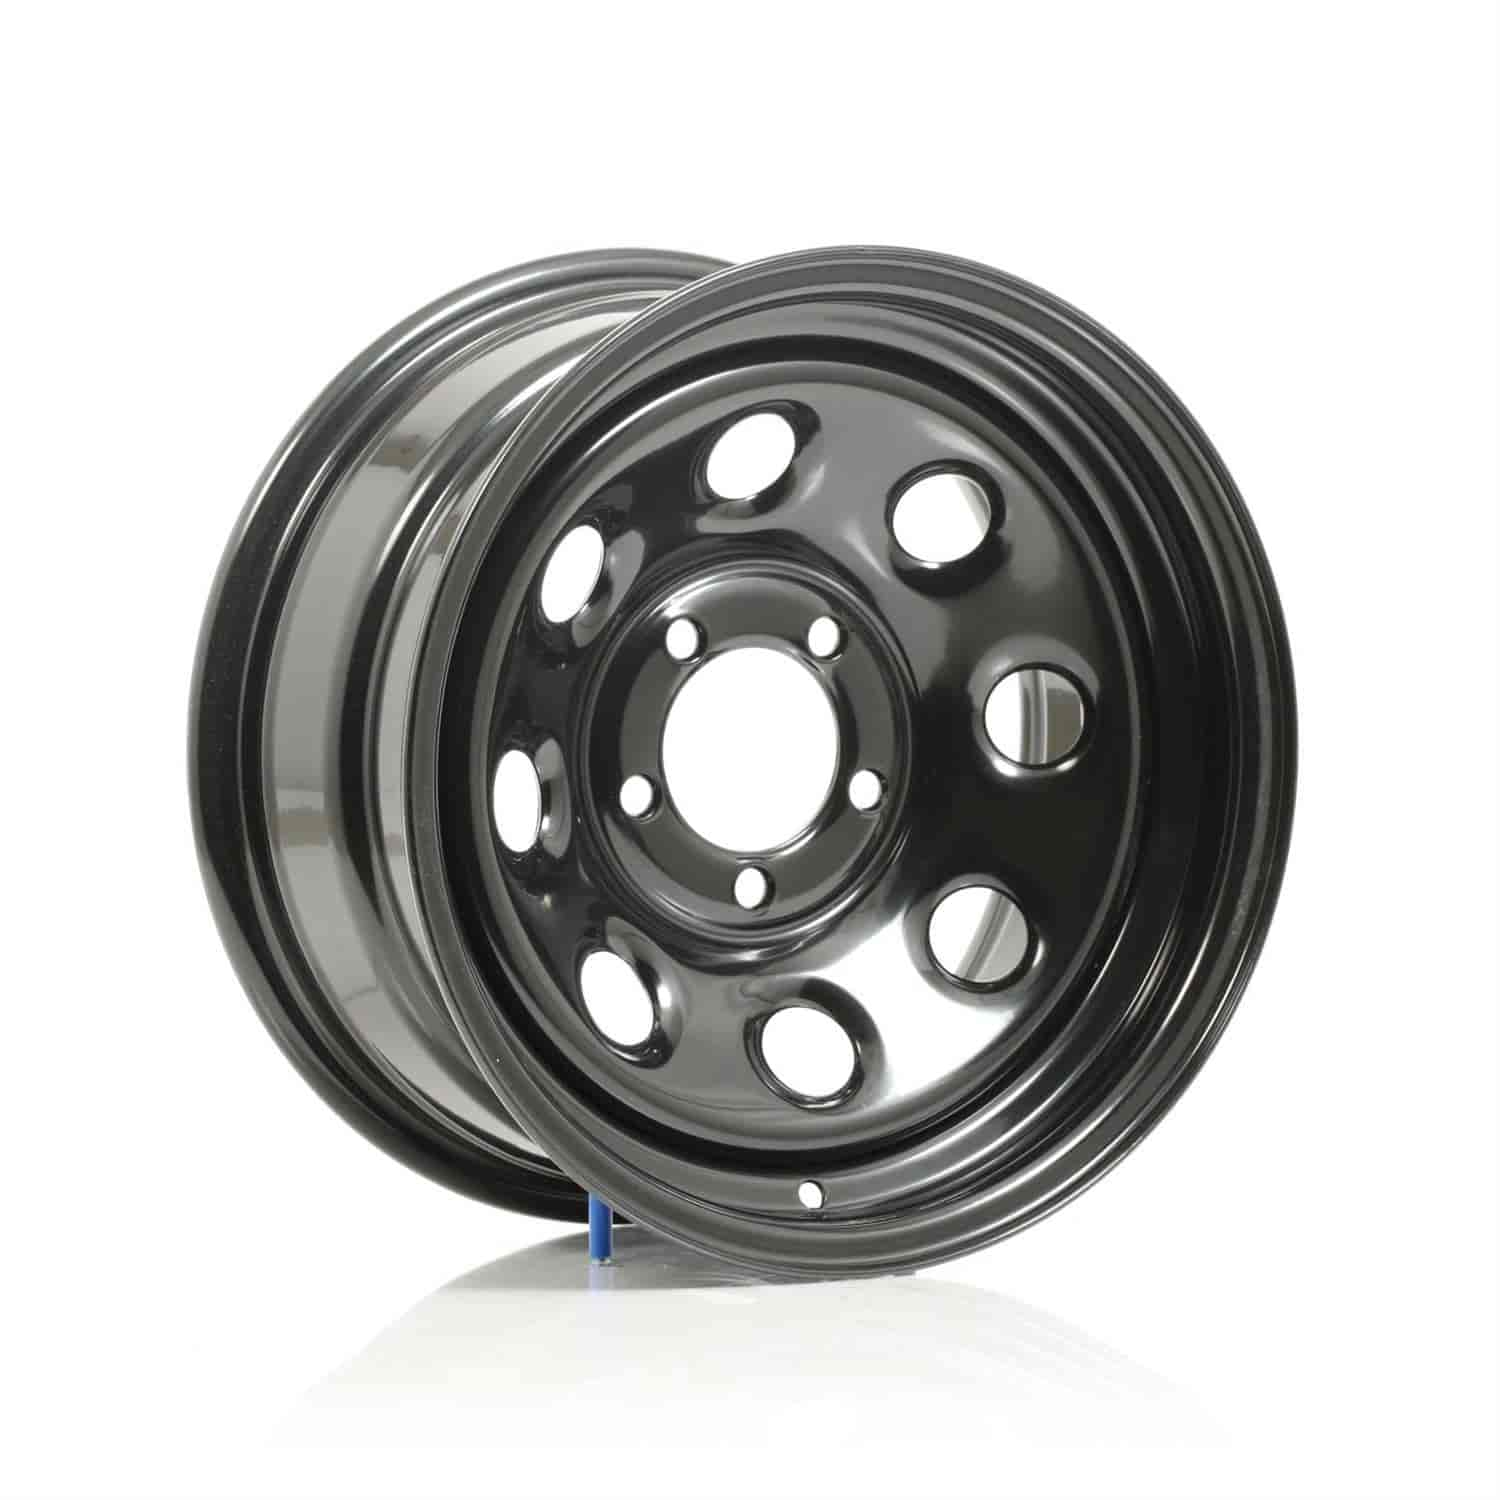 Cragar 3975764P - Cragar Black Soft 8 Wheels